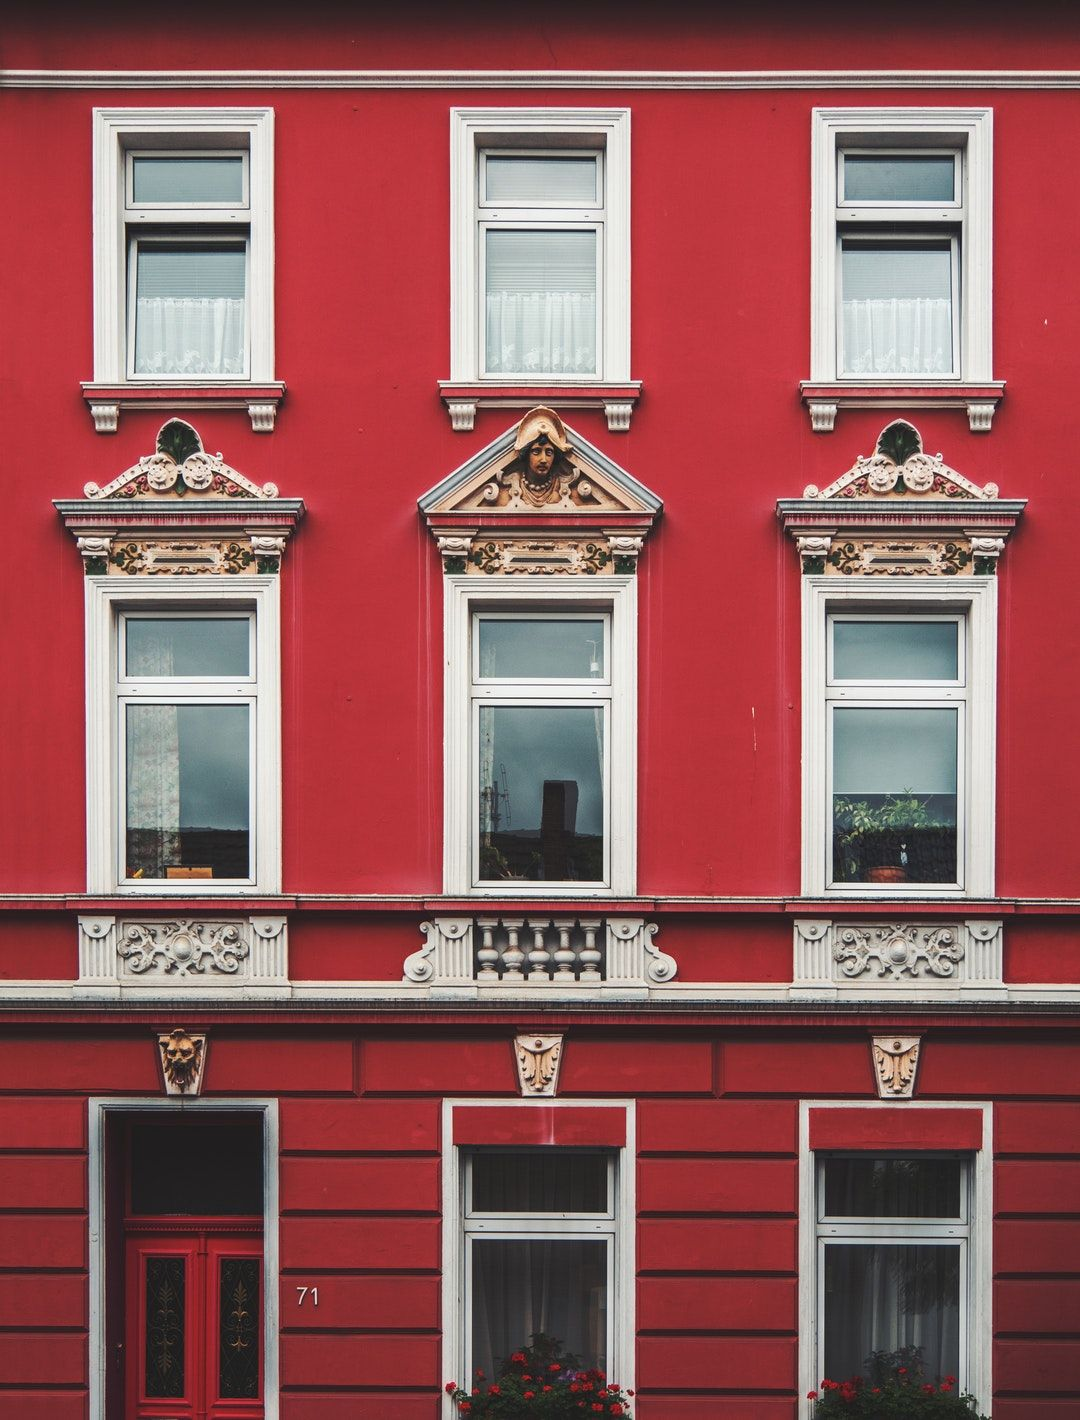 New Trends We're All About The Red Color These Days, You Should Too 6 new trends New Trends: Red Color Took Over Our Blog Feed This Week! New Trends Were All About The Red Color These Days You Should Too 6